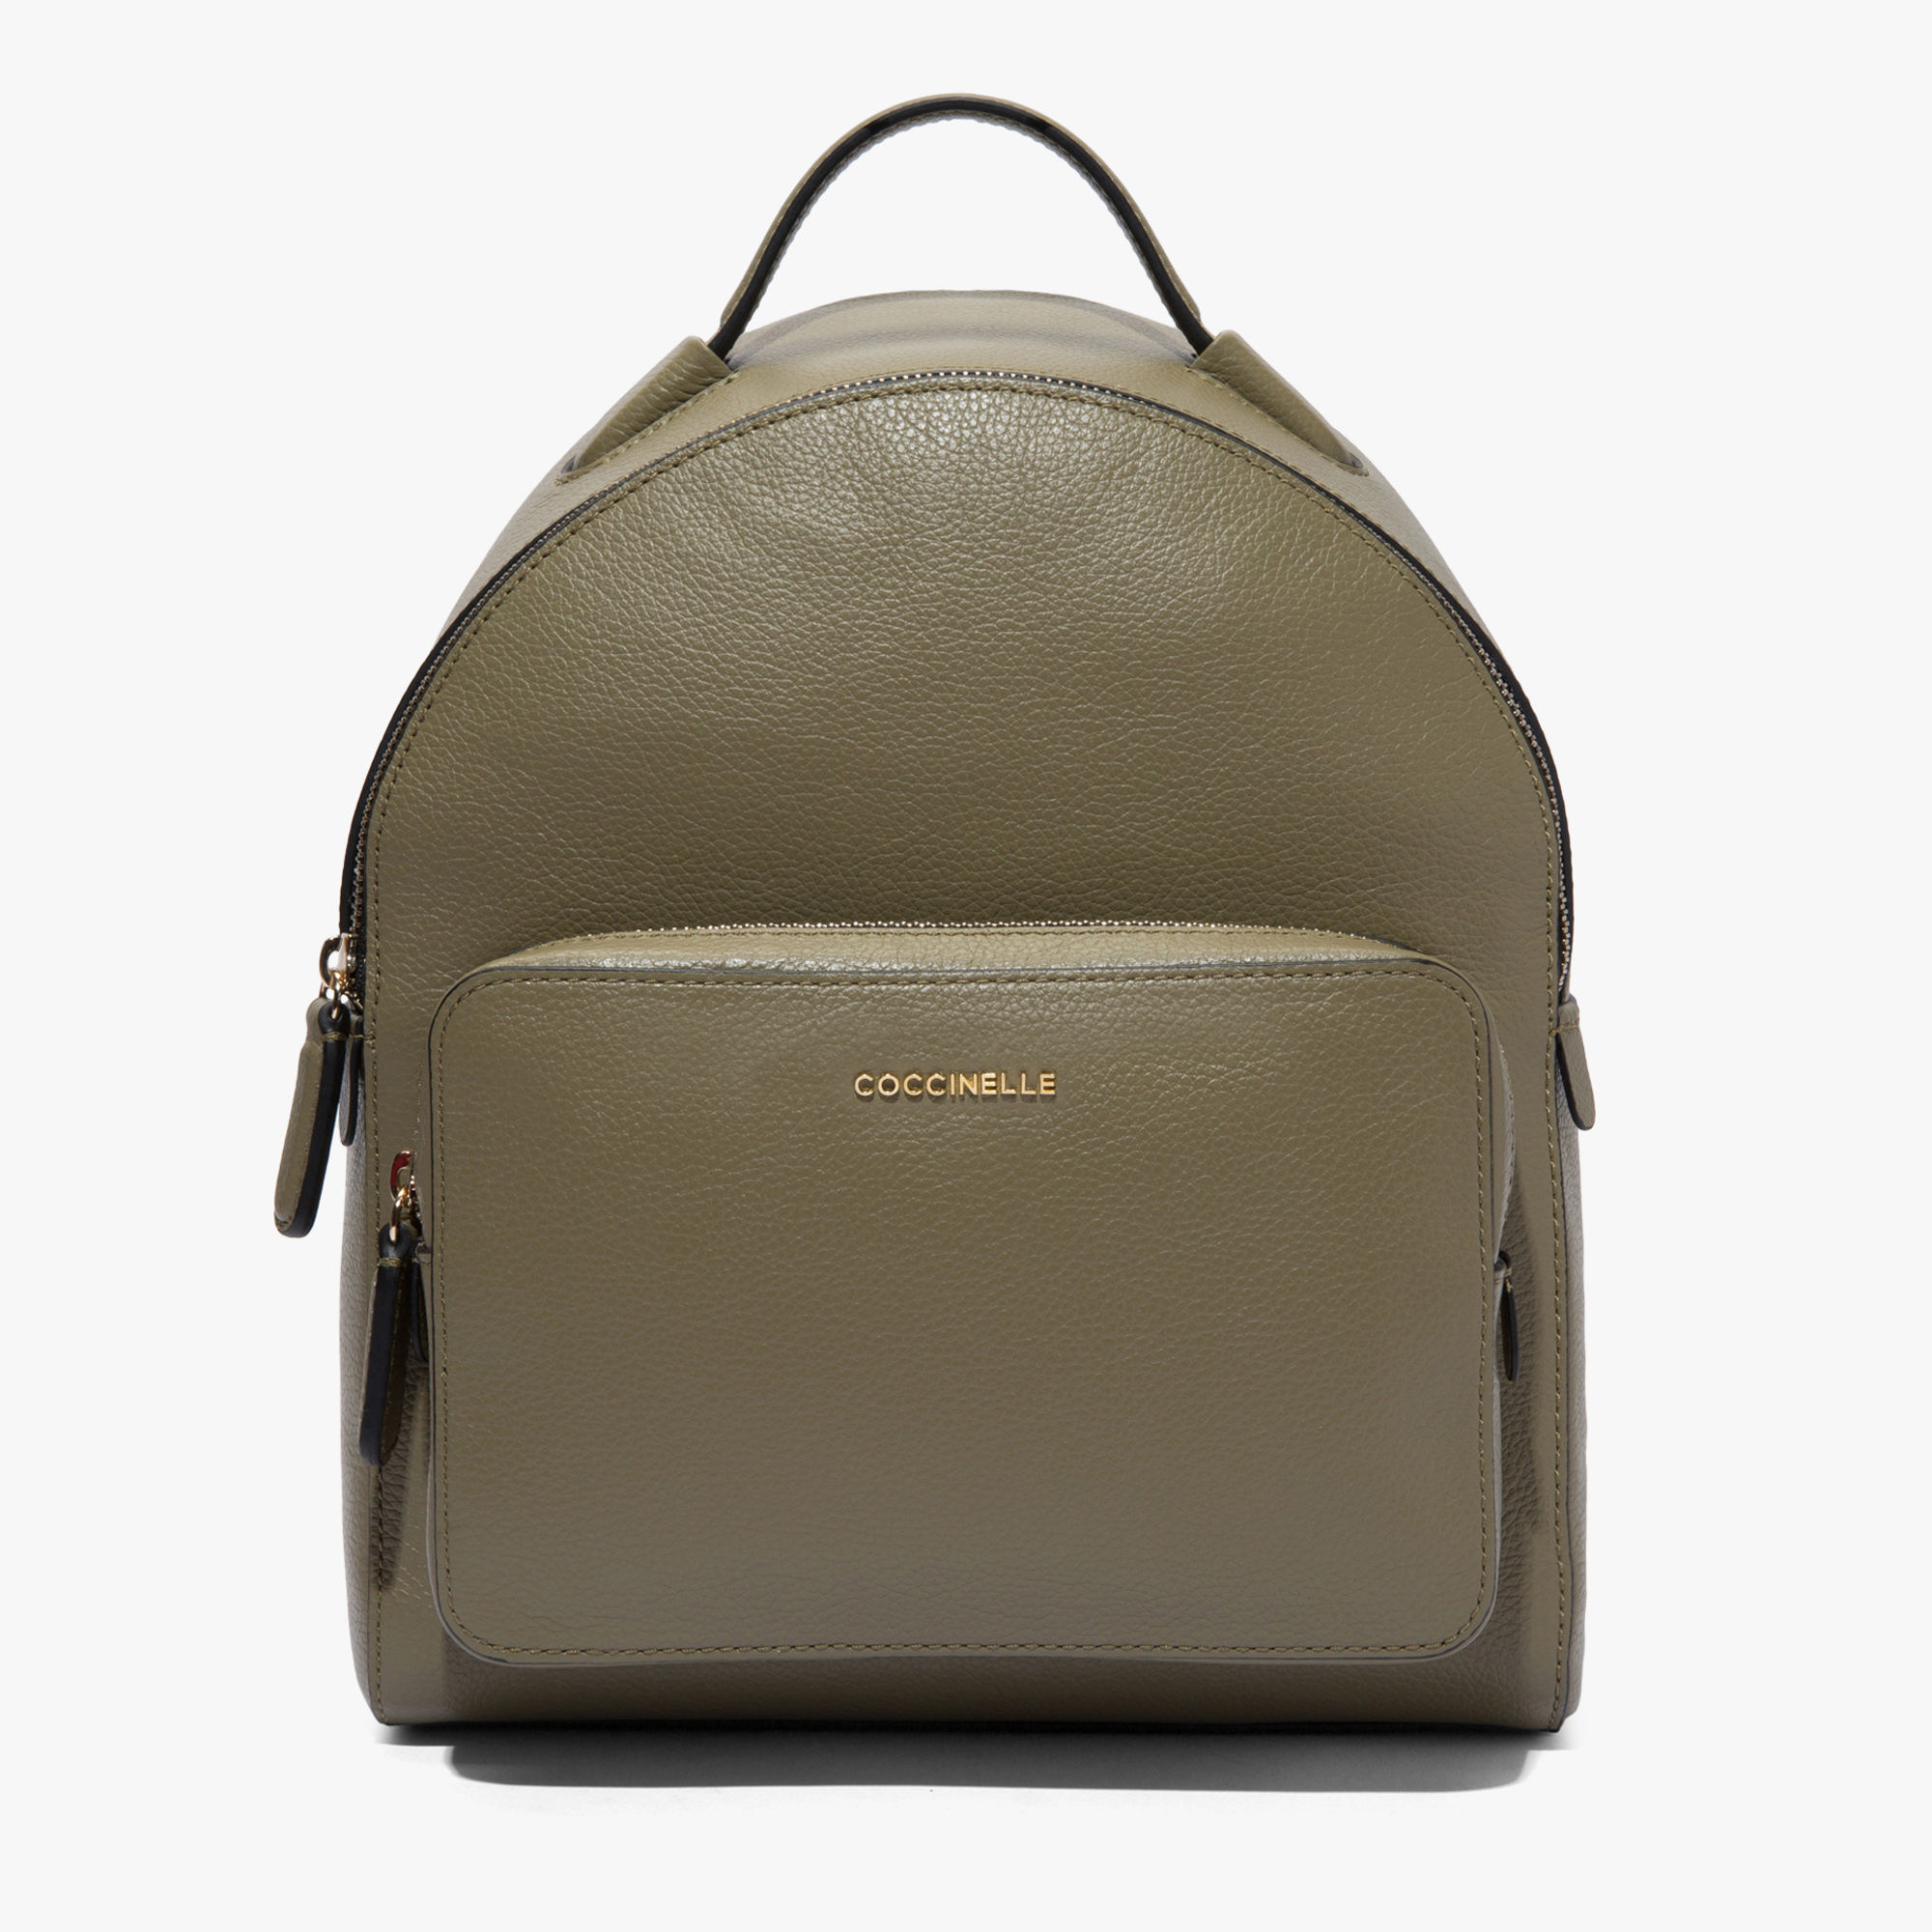 2000x2000 Women's Backpacks In Leather Coccinelle